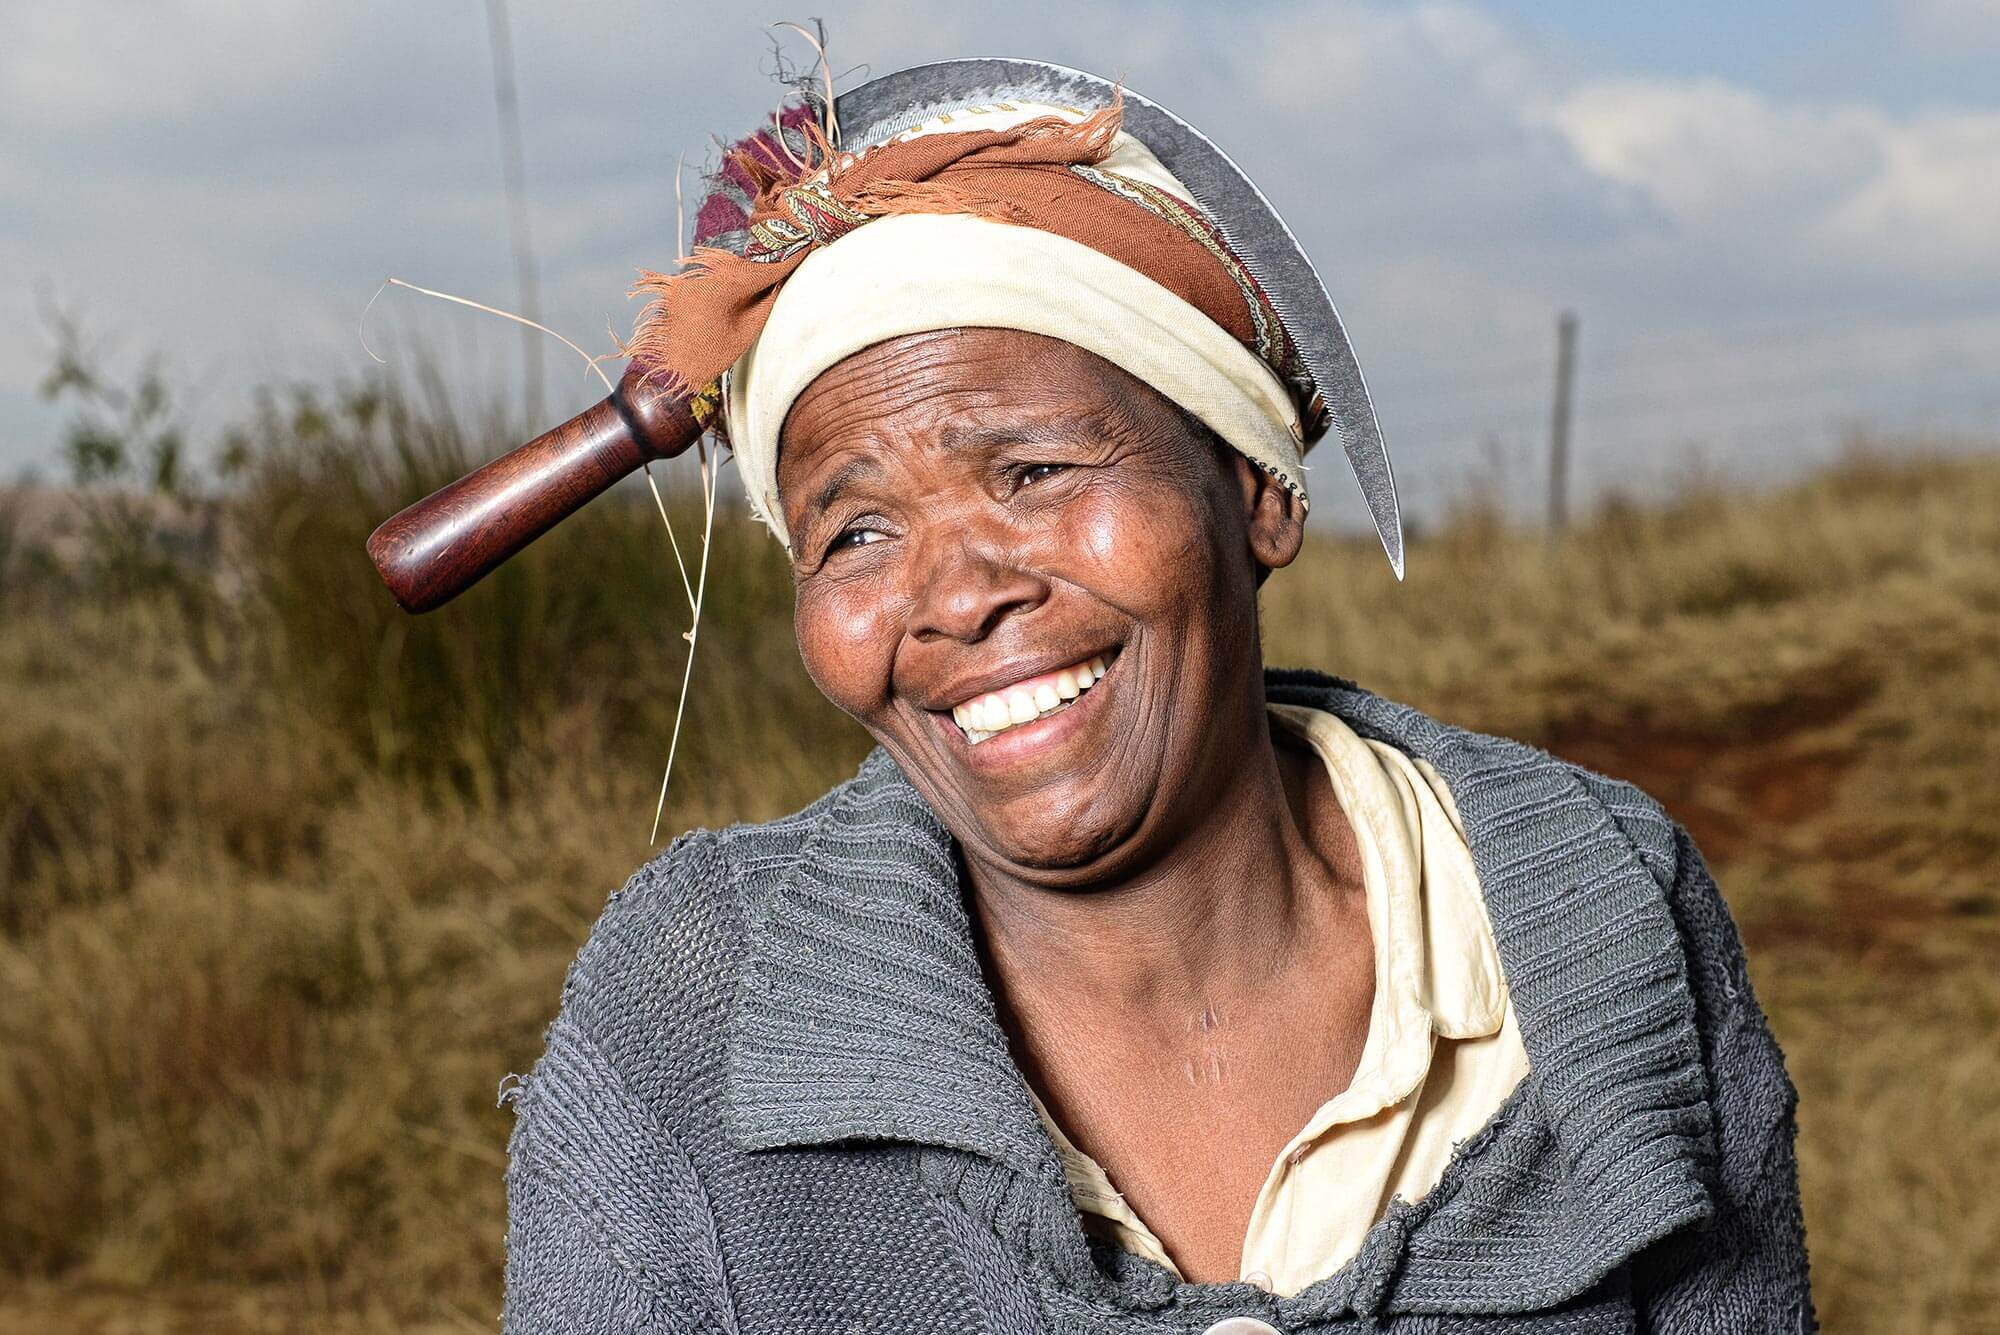 south-african-rural-female-farmer-portrait-photography-brandon-barnard.jpg